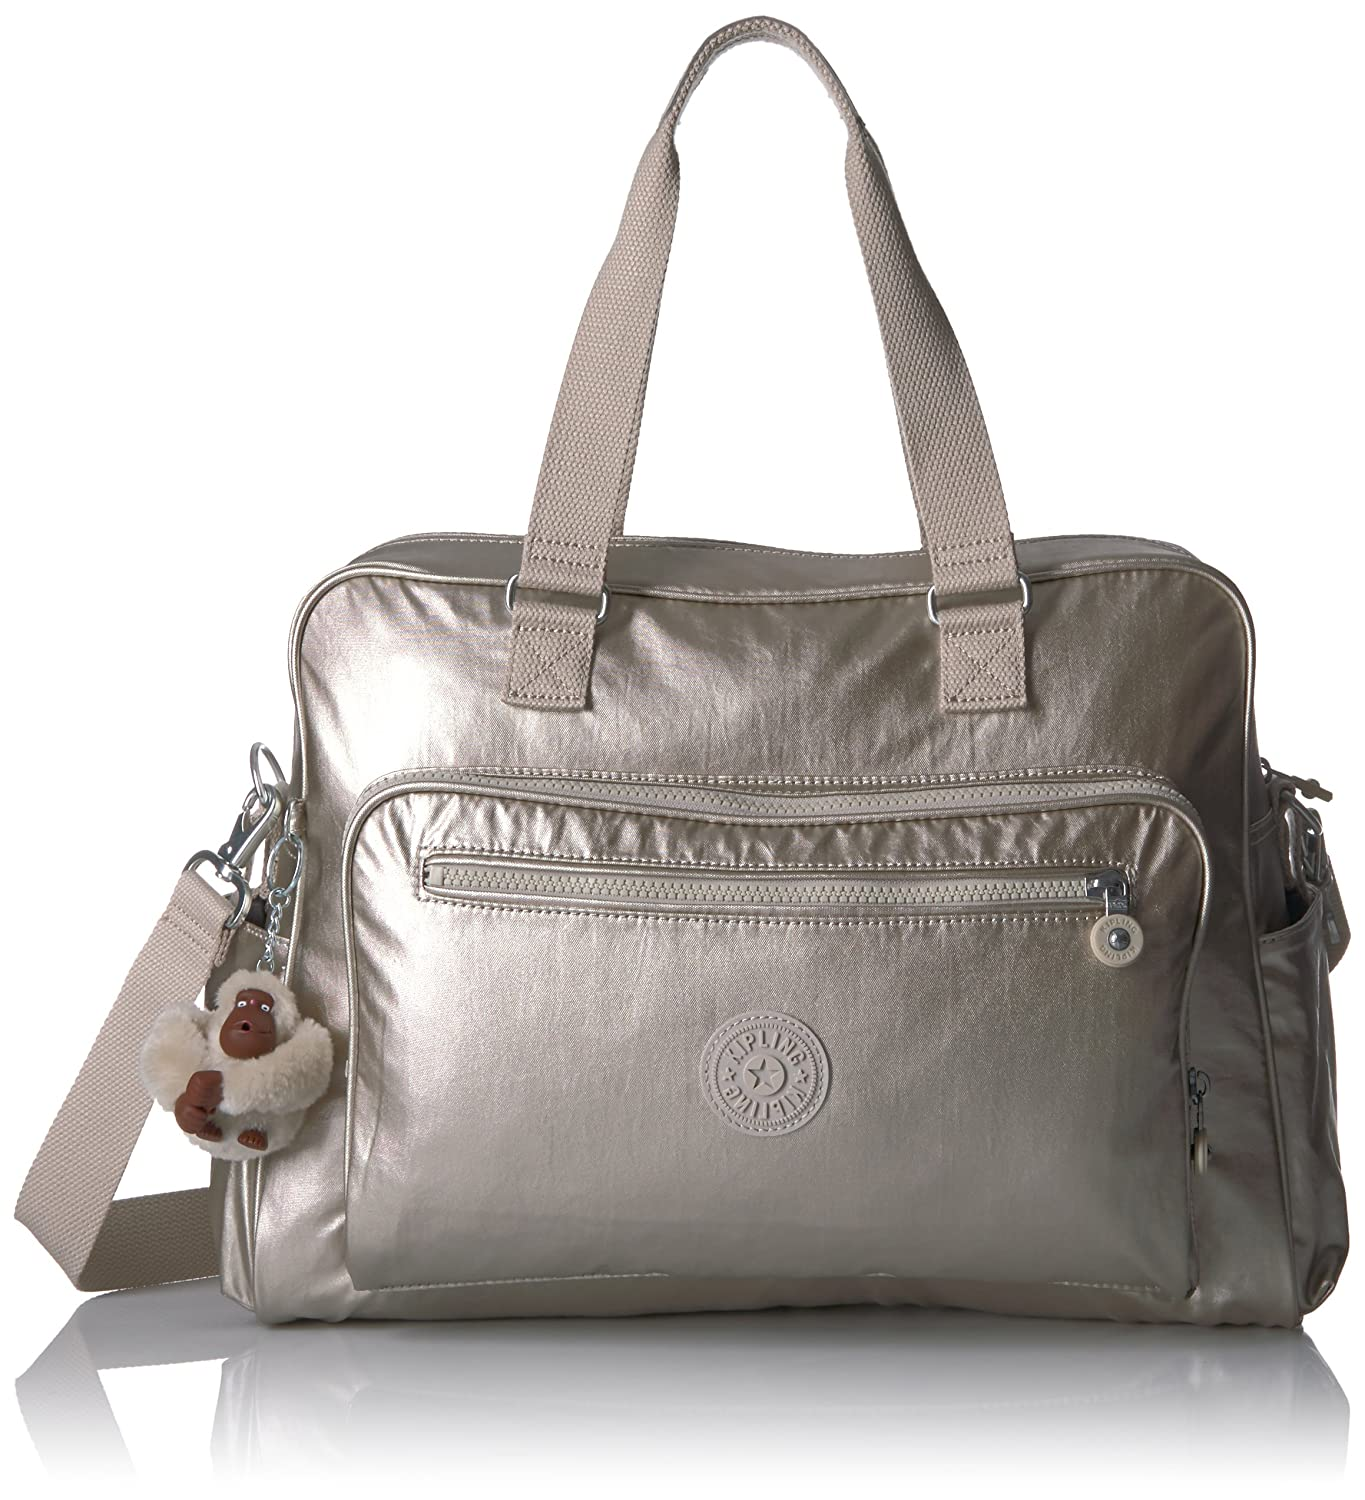 Kipling レディース B074LY8K3G Cloud Grey/Metallic